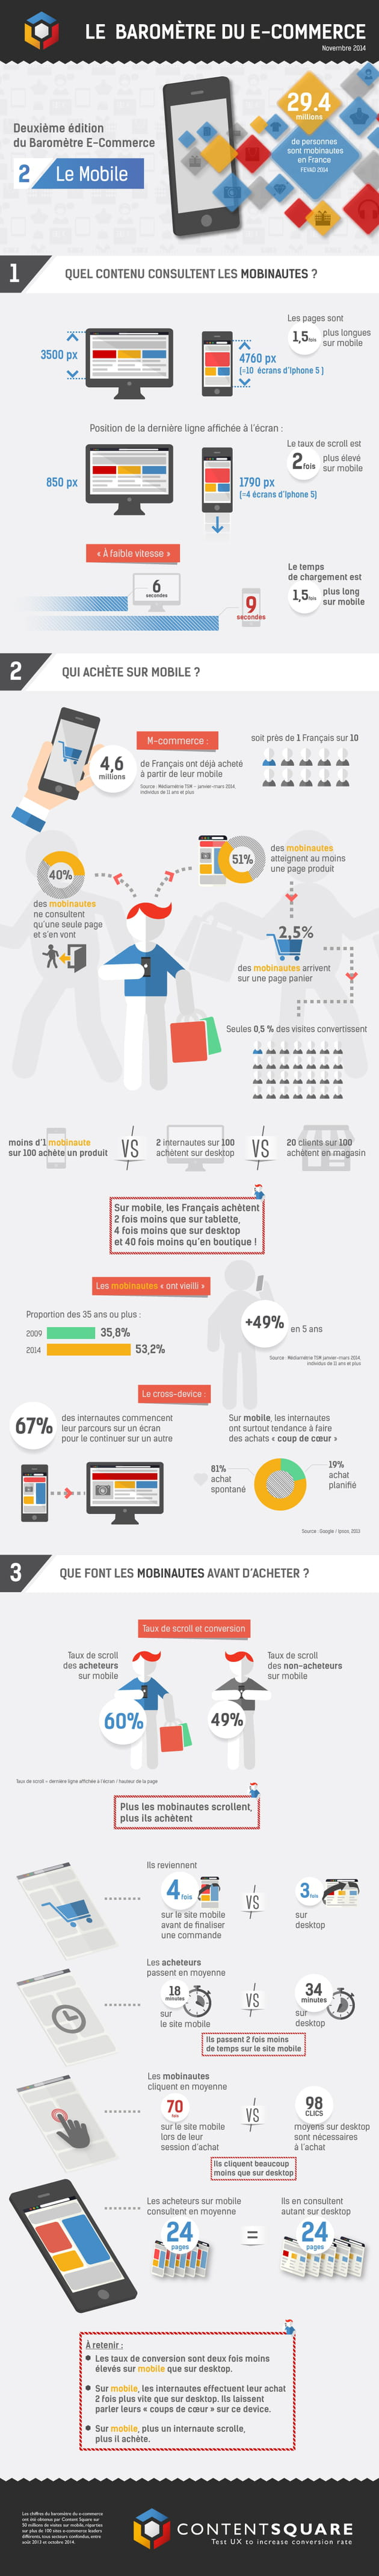 infographie ecommerce mobile nov 14